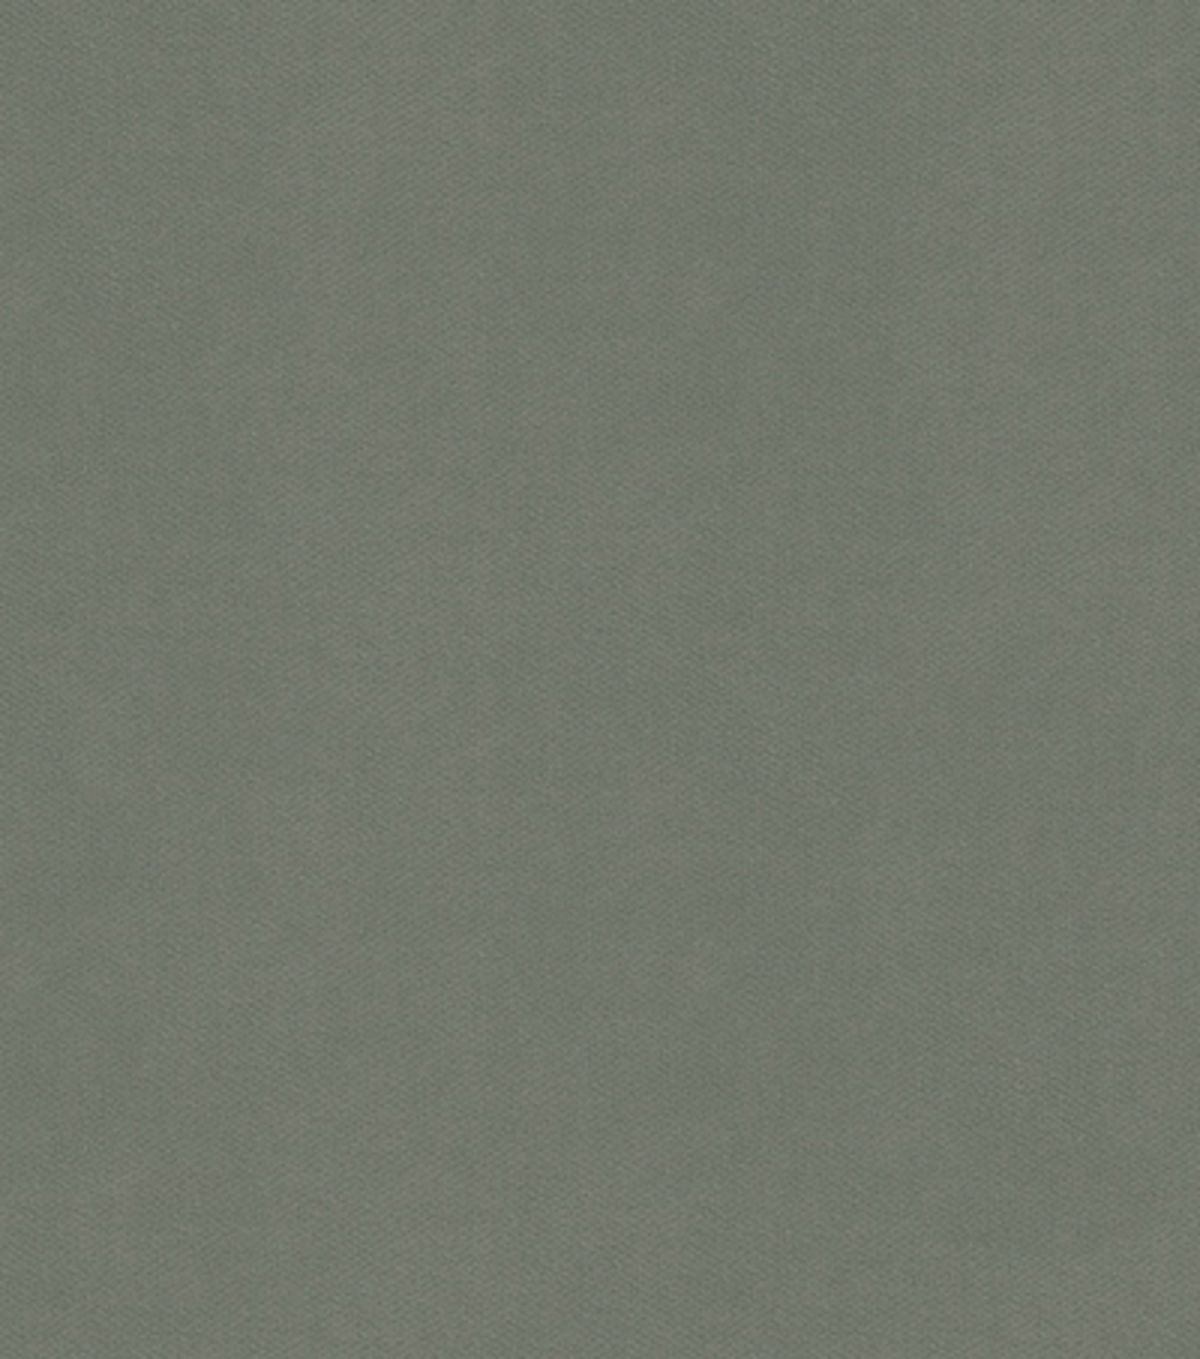 Lightweight Decor Fabric-Como-6031-Gris